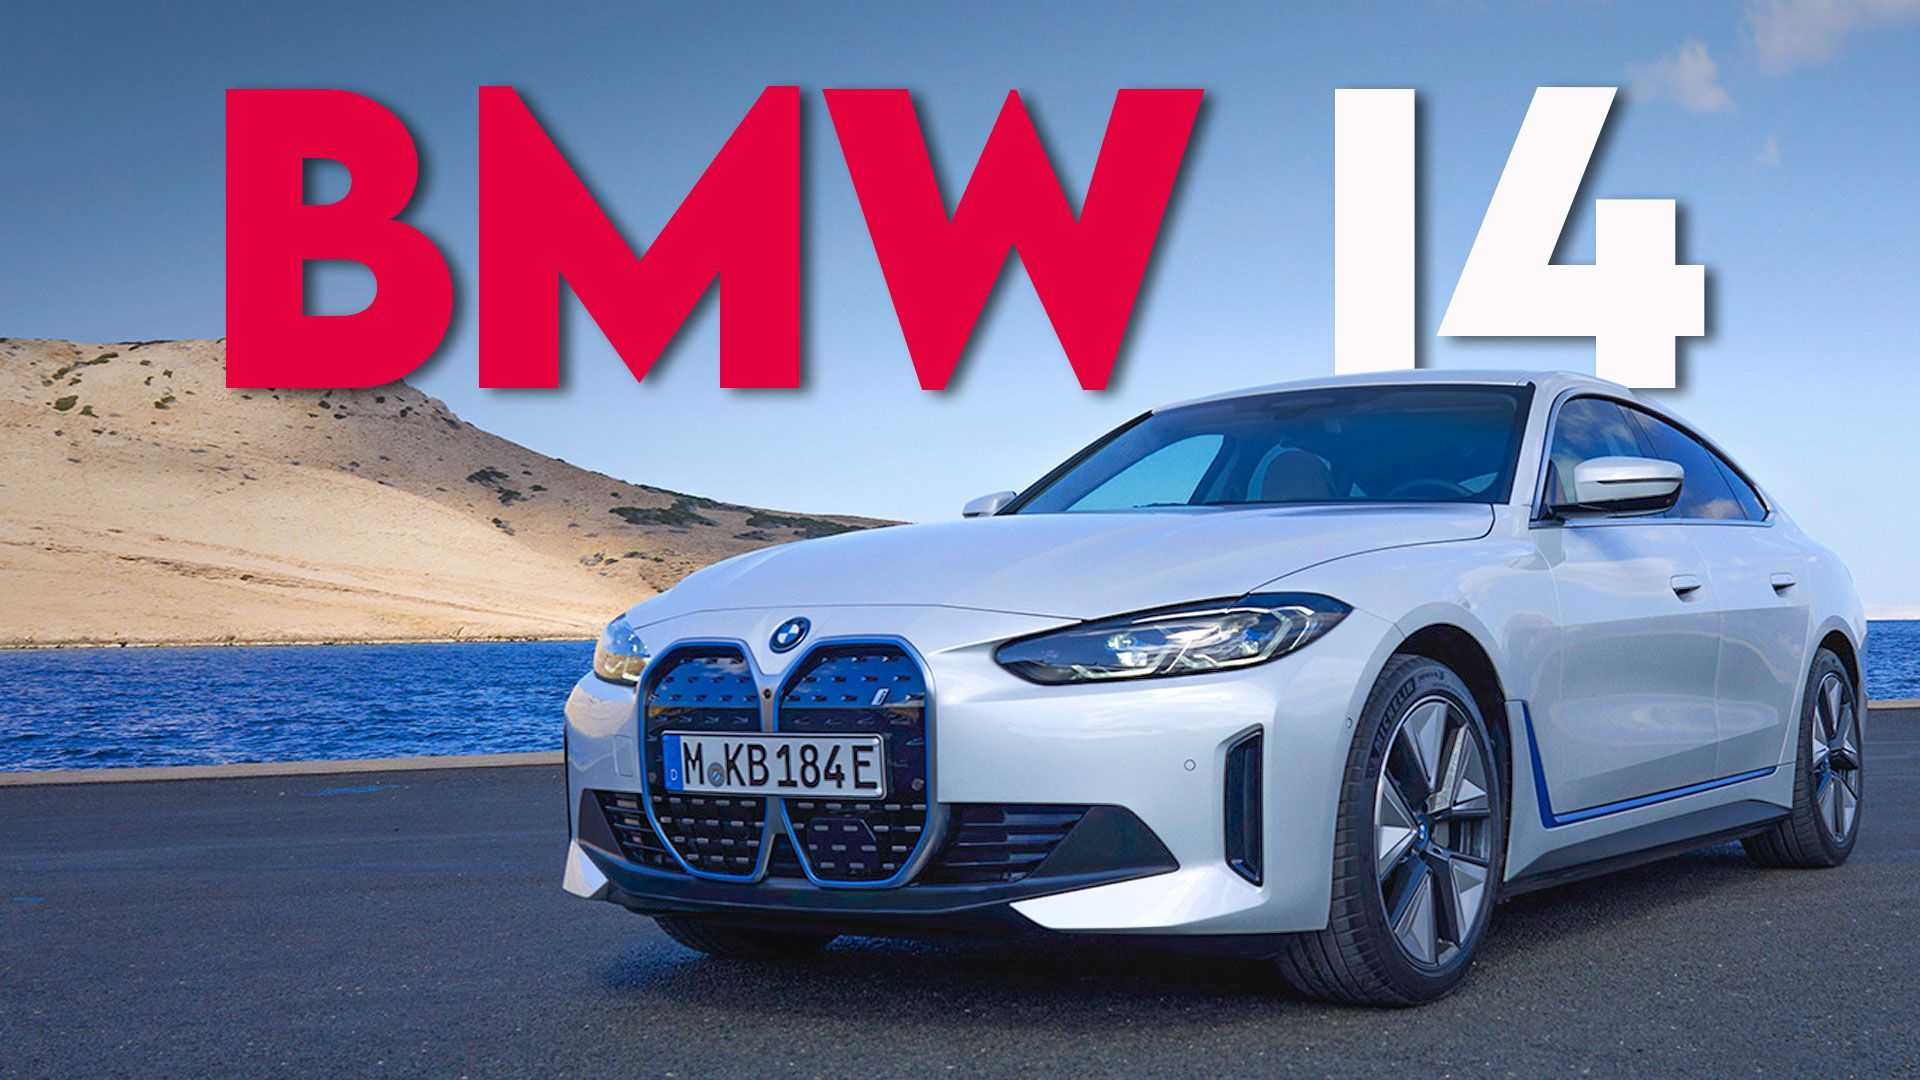 BMW i4: Everything You Need To Know